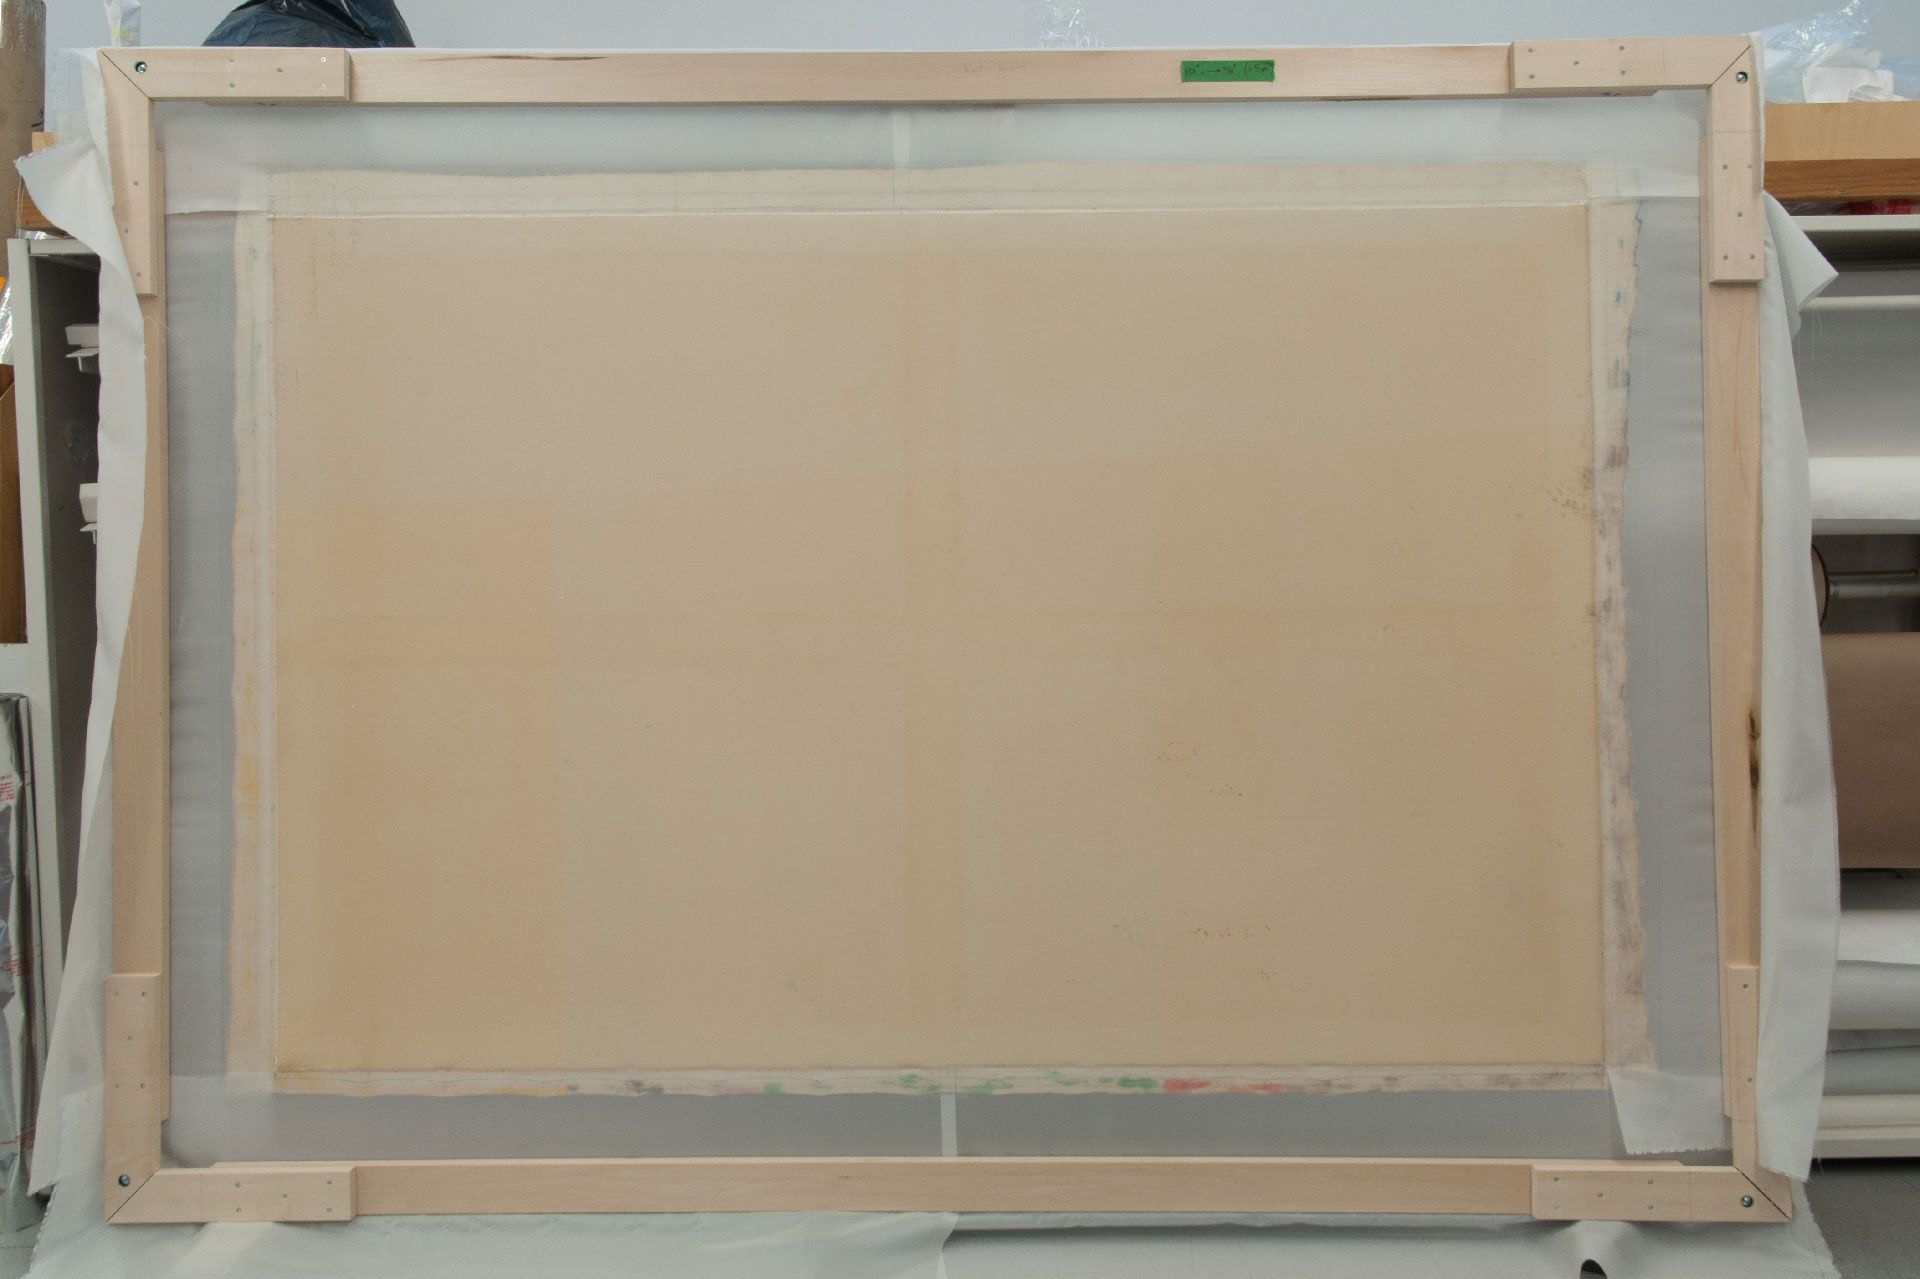 After releasing the canvas from its stretcher, bands of polyester fabric were adhered to the flattened tacking margins of the painting, allowing it to be secured to a temporary loom.